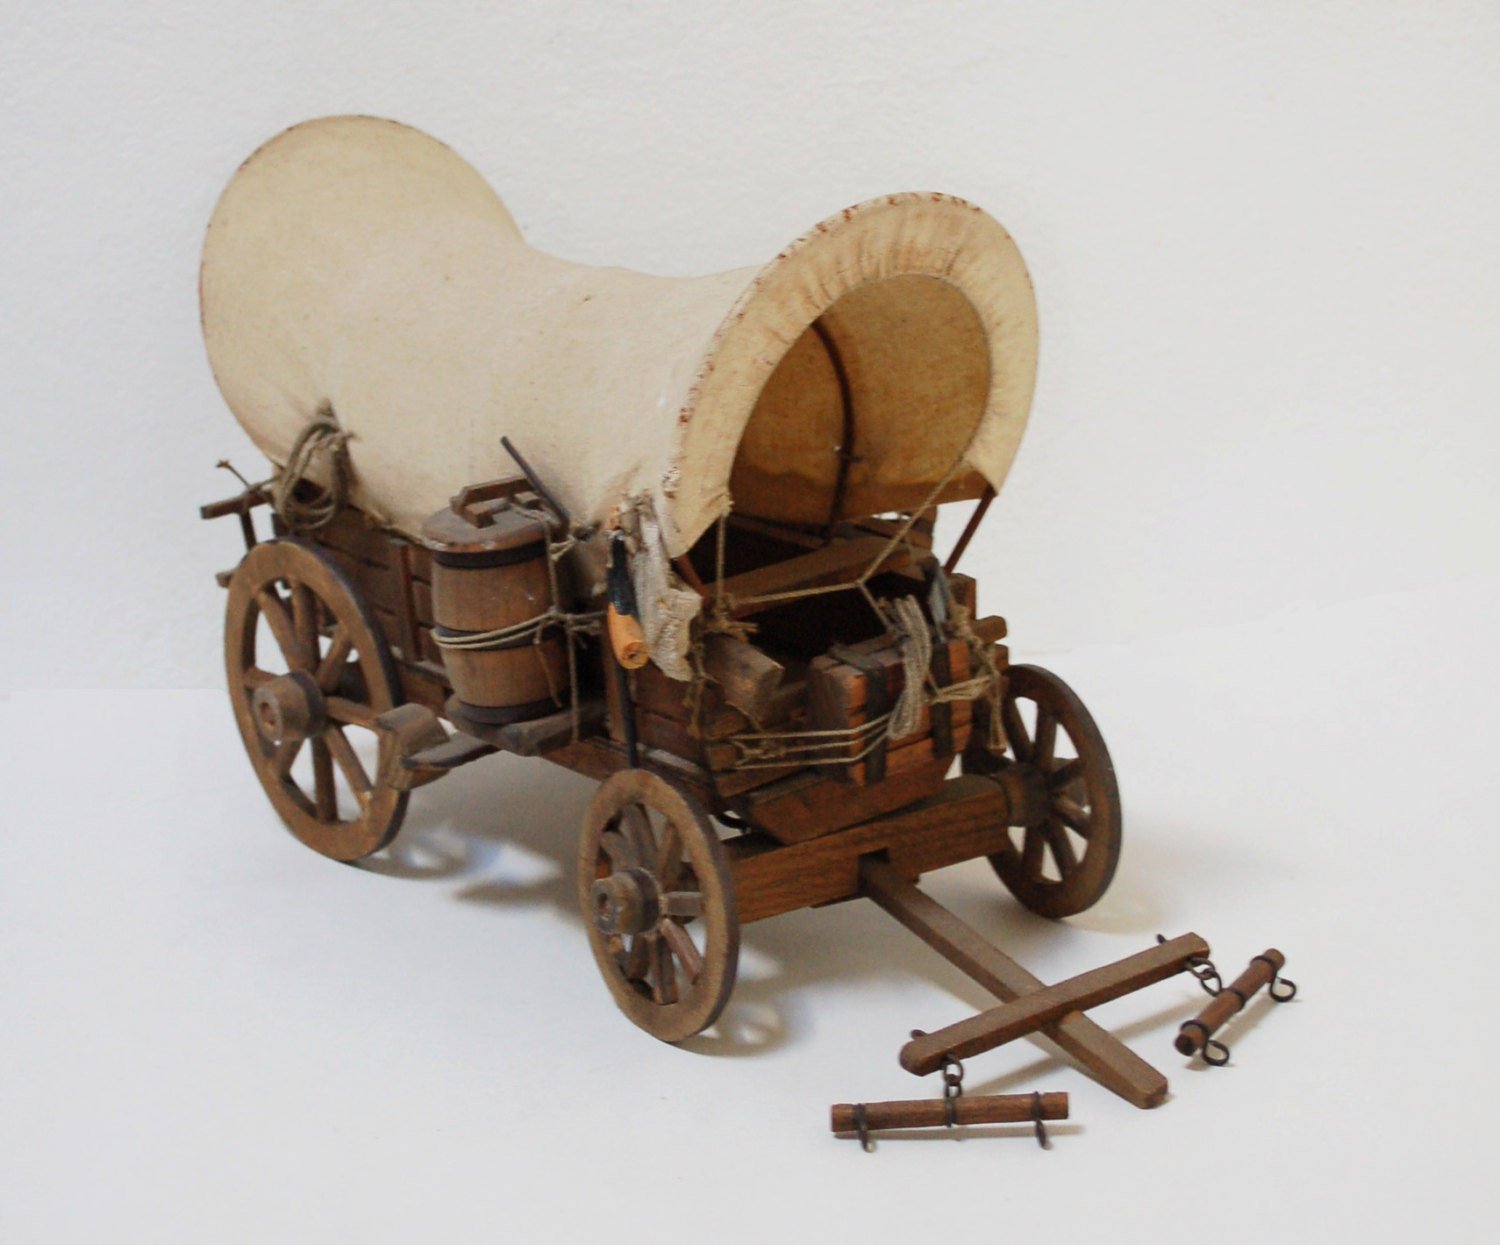 Antique 1900 Covered Wagon Model Old West By Skomoroki